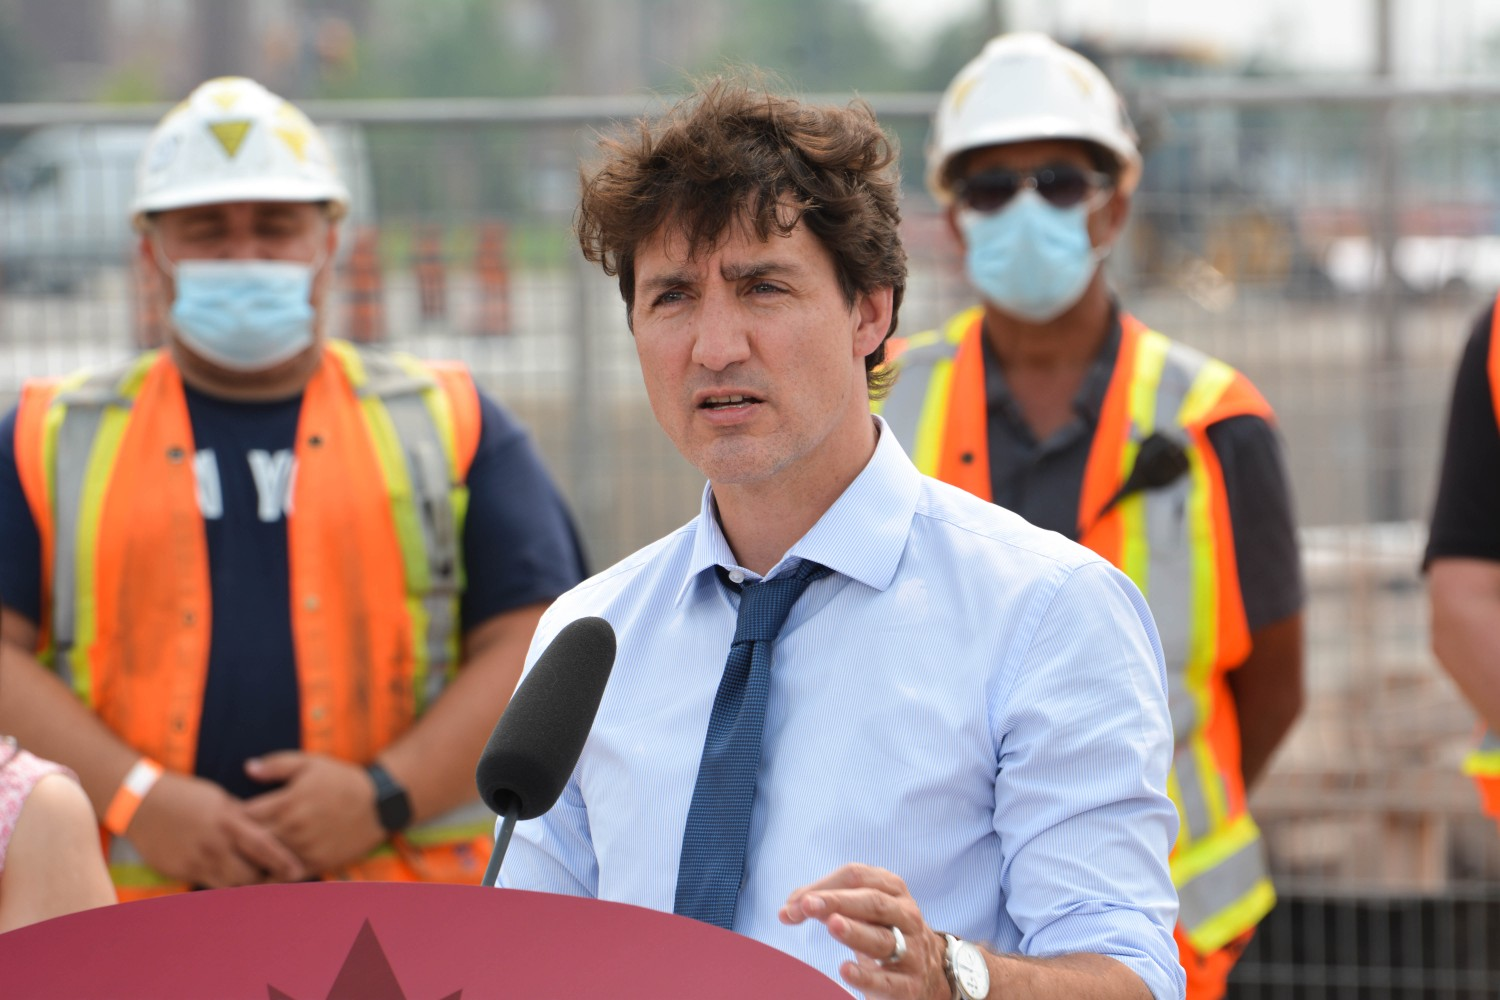 Amid speculation of a federal election, Trudeau visits Brampton for campaign-style housing commitment